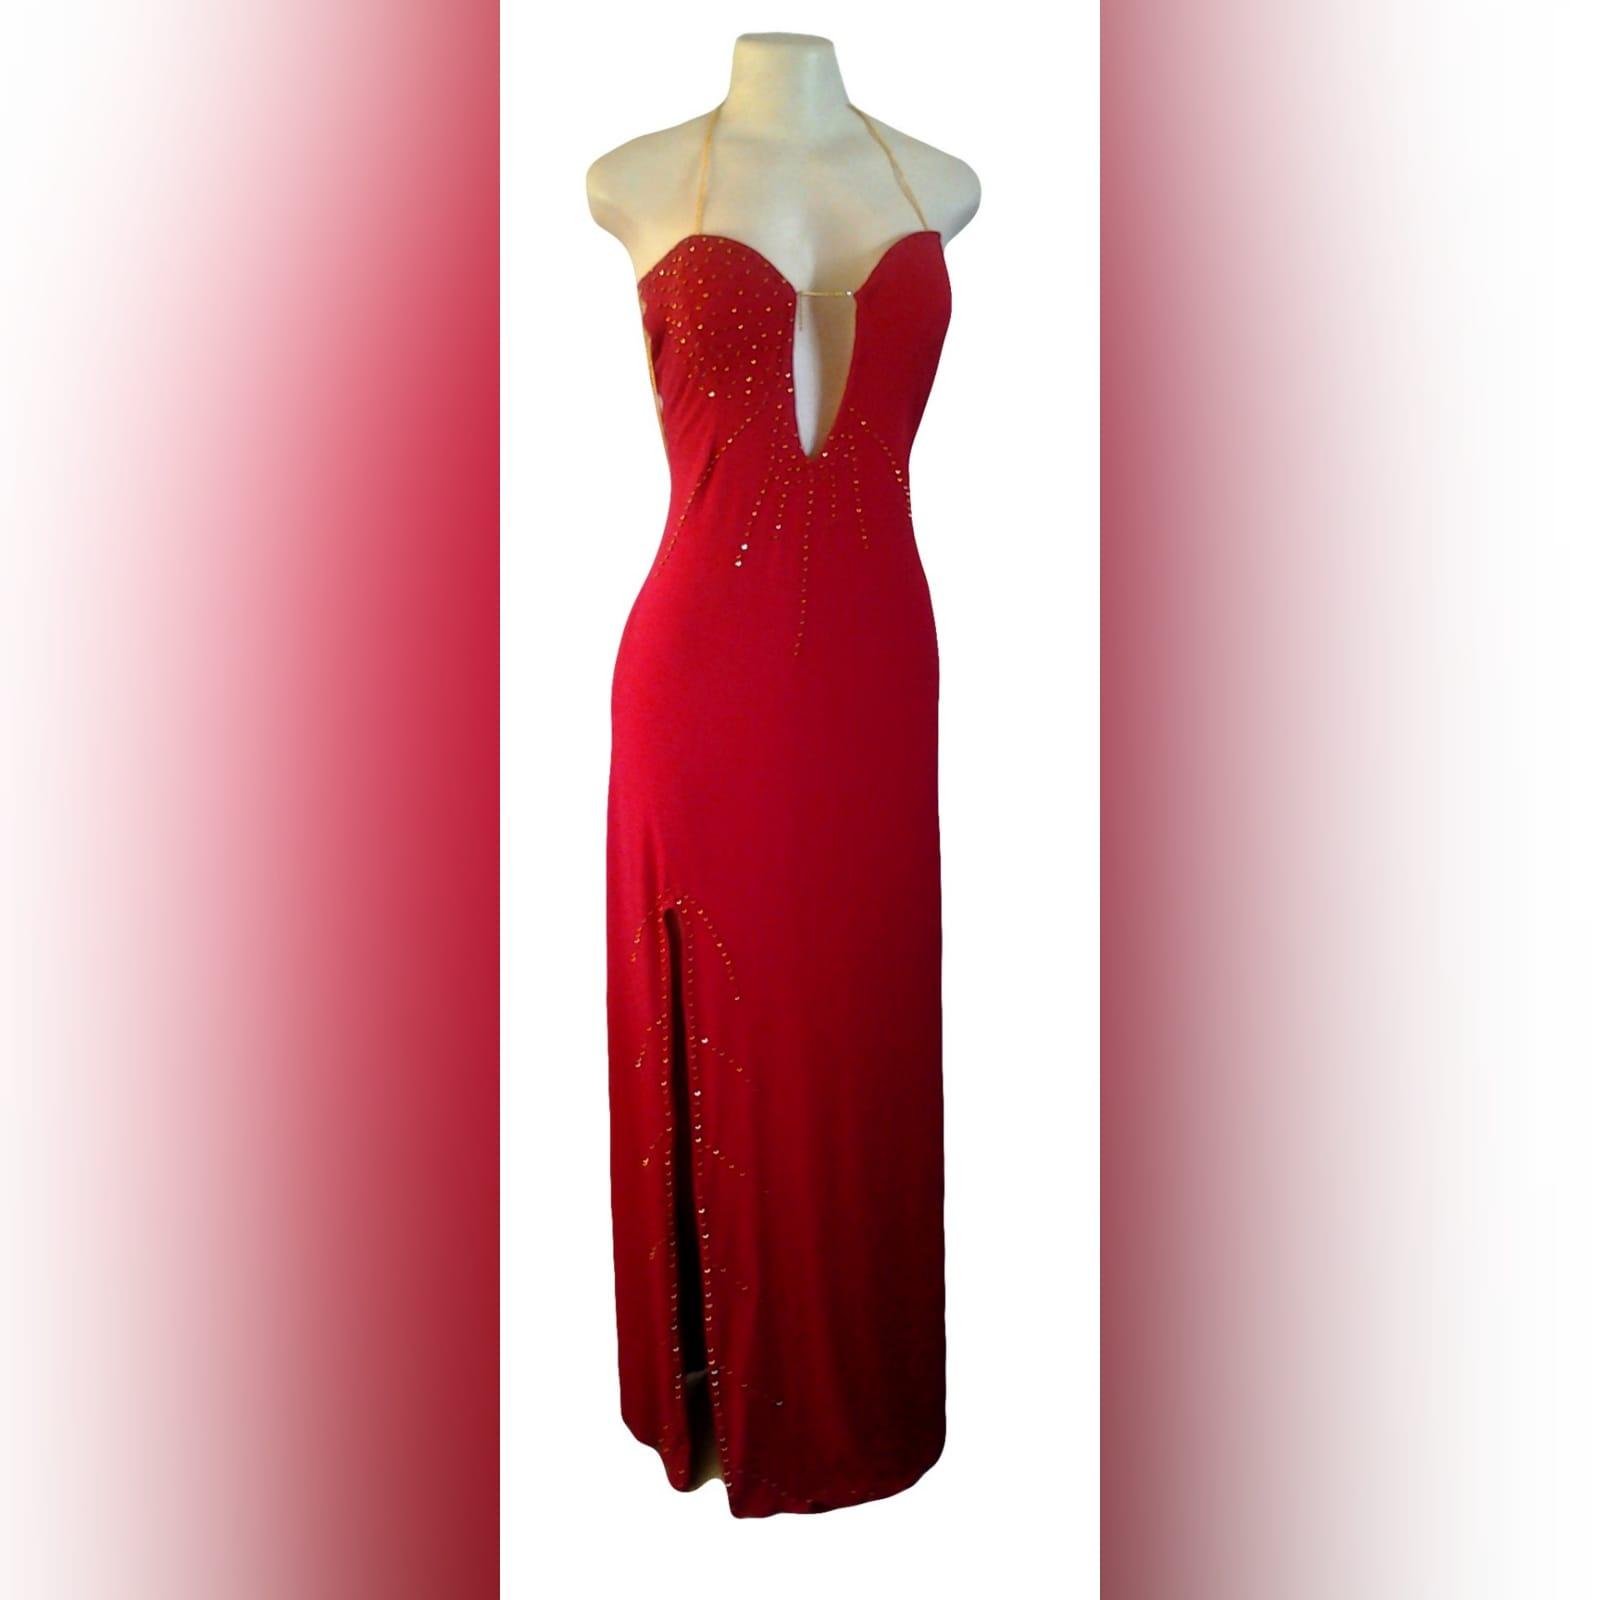 Red and gold long sexy gala dress 6 red and gold long sexy gala dress with an open back detailed with gold chain. With a slit detailed with gold beads.